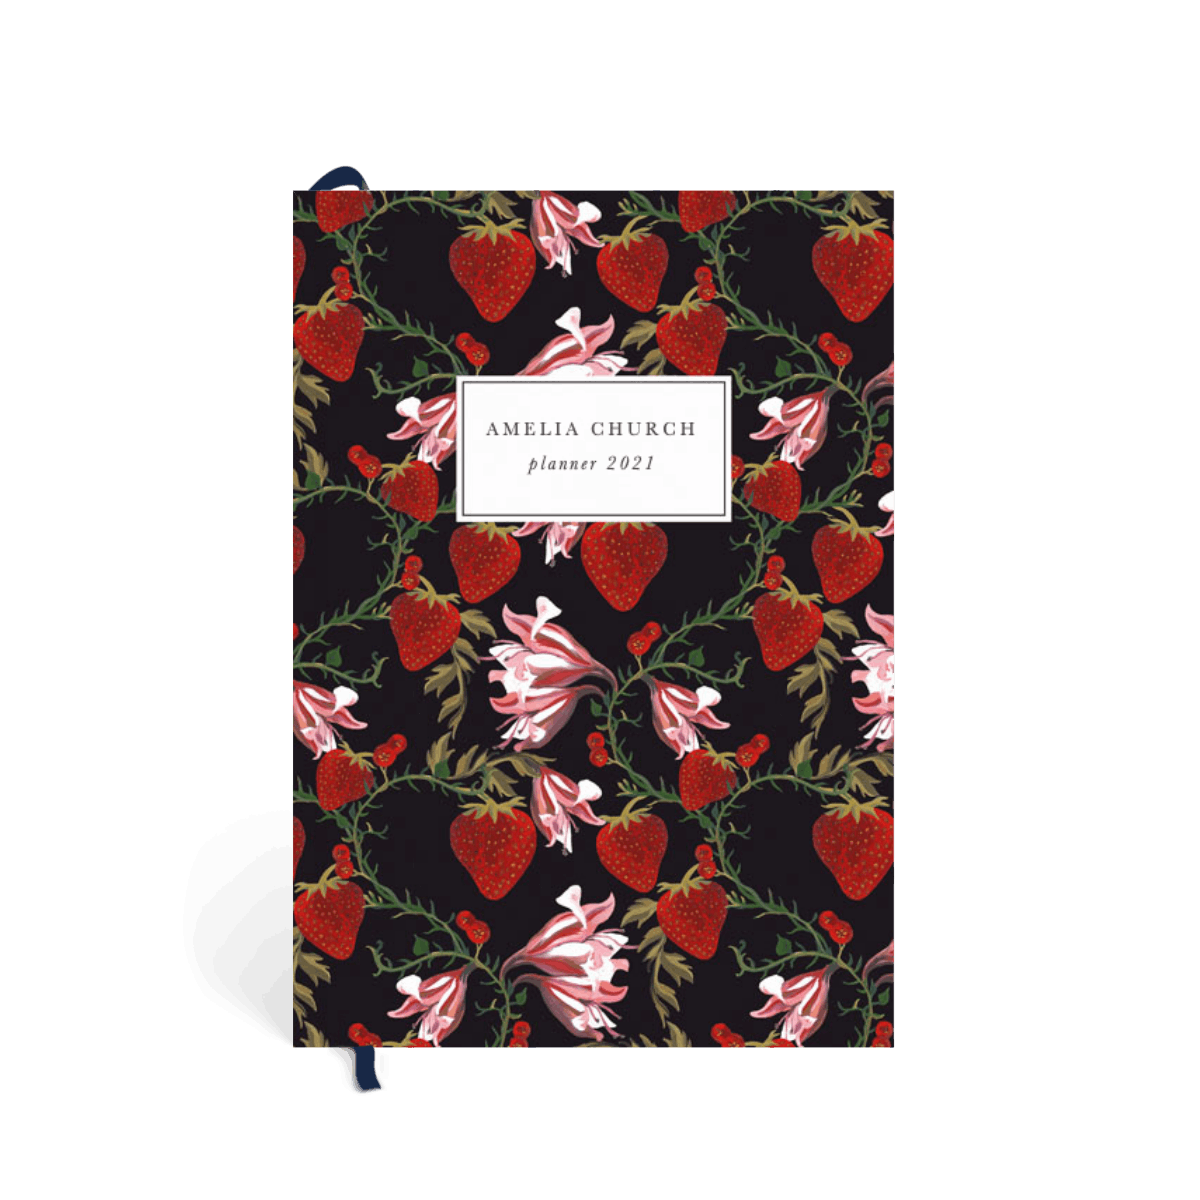 Https%3a%2f%2fwww.papier.com%2fproduct image%2f51923%2f36%2fstrawberry floral navy 12167 front 1562667654.png?ixlib=rb 1.1